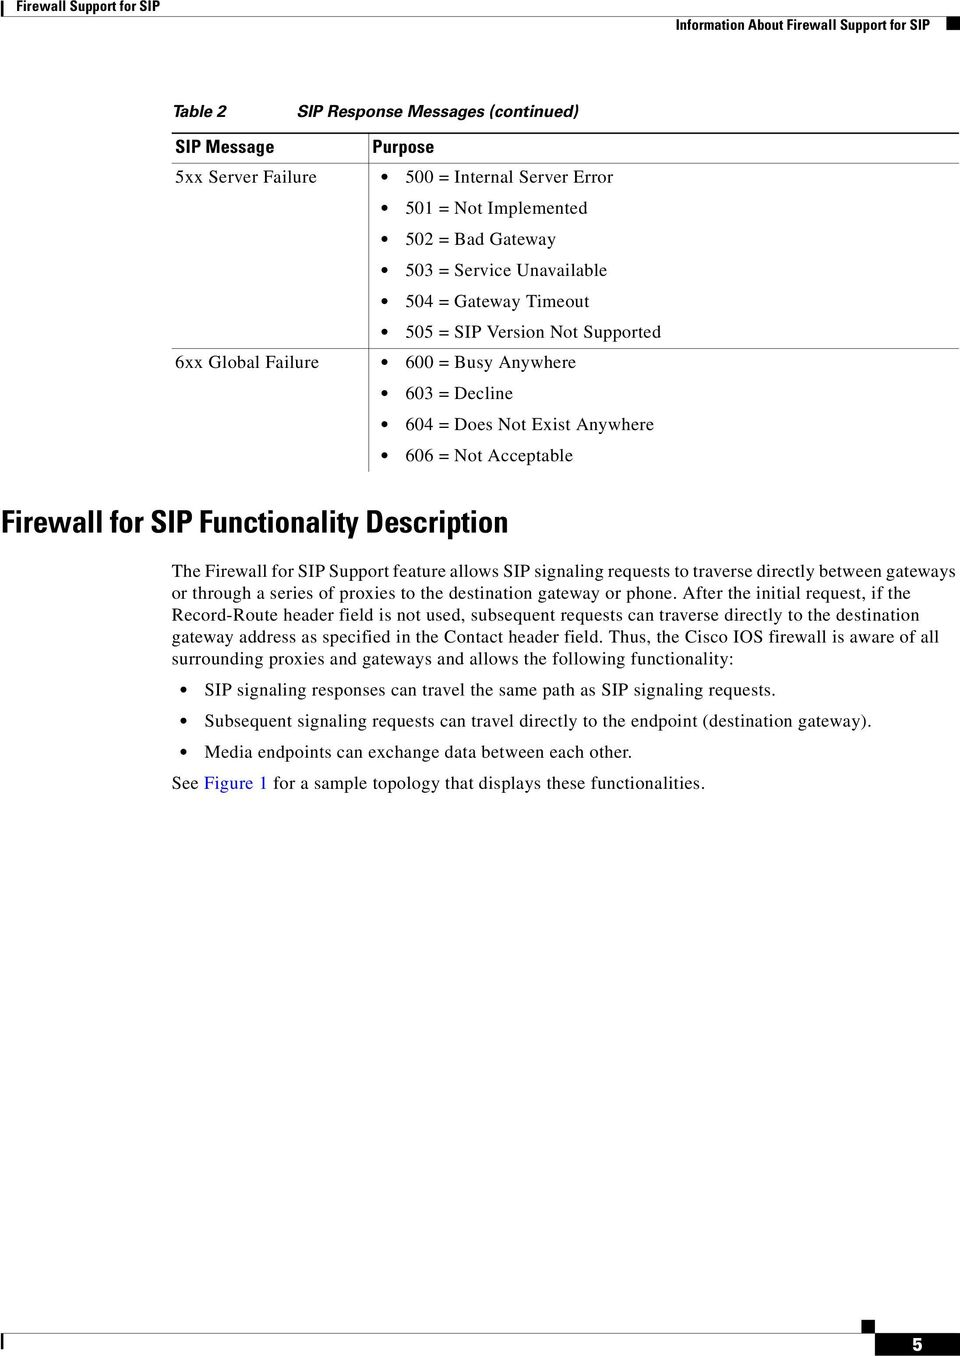 Firewall for SIP Functionality Description The Firewall for SIP Support feature allows SIP signaling requests to traverse directly between gateways or through a series of proxies to the destination